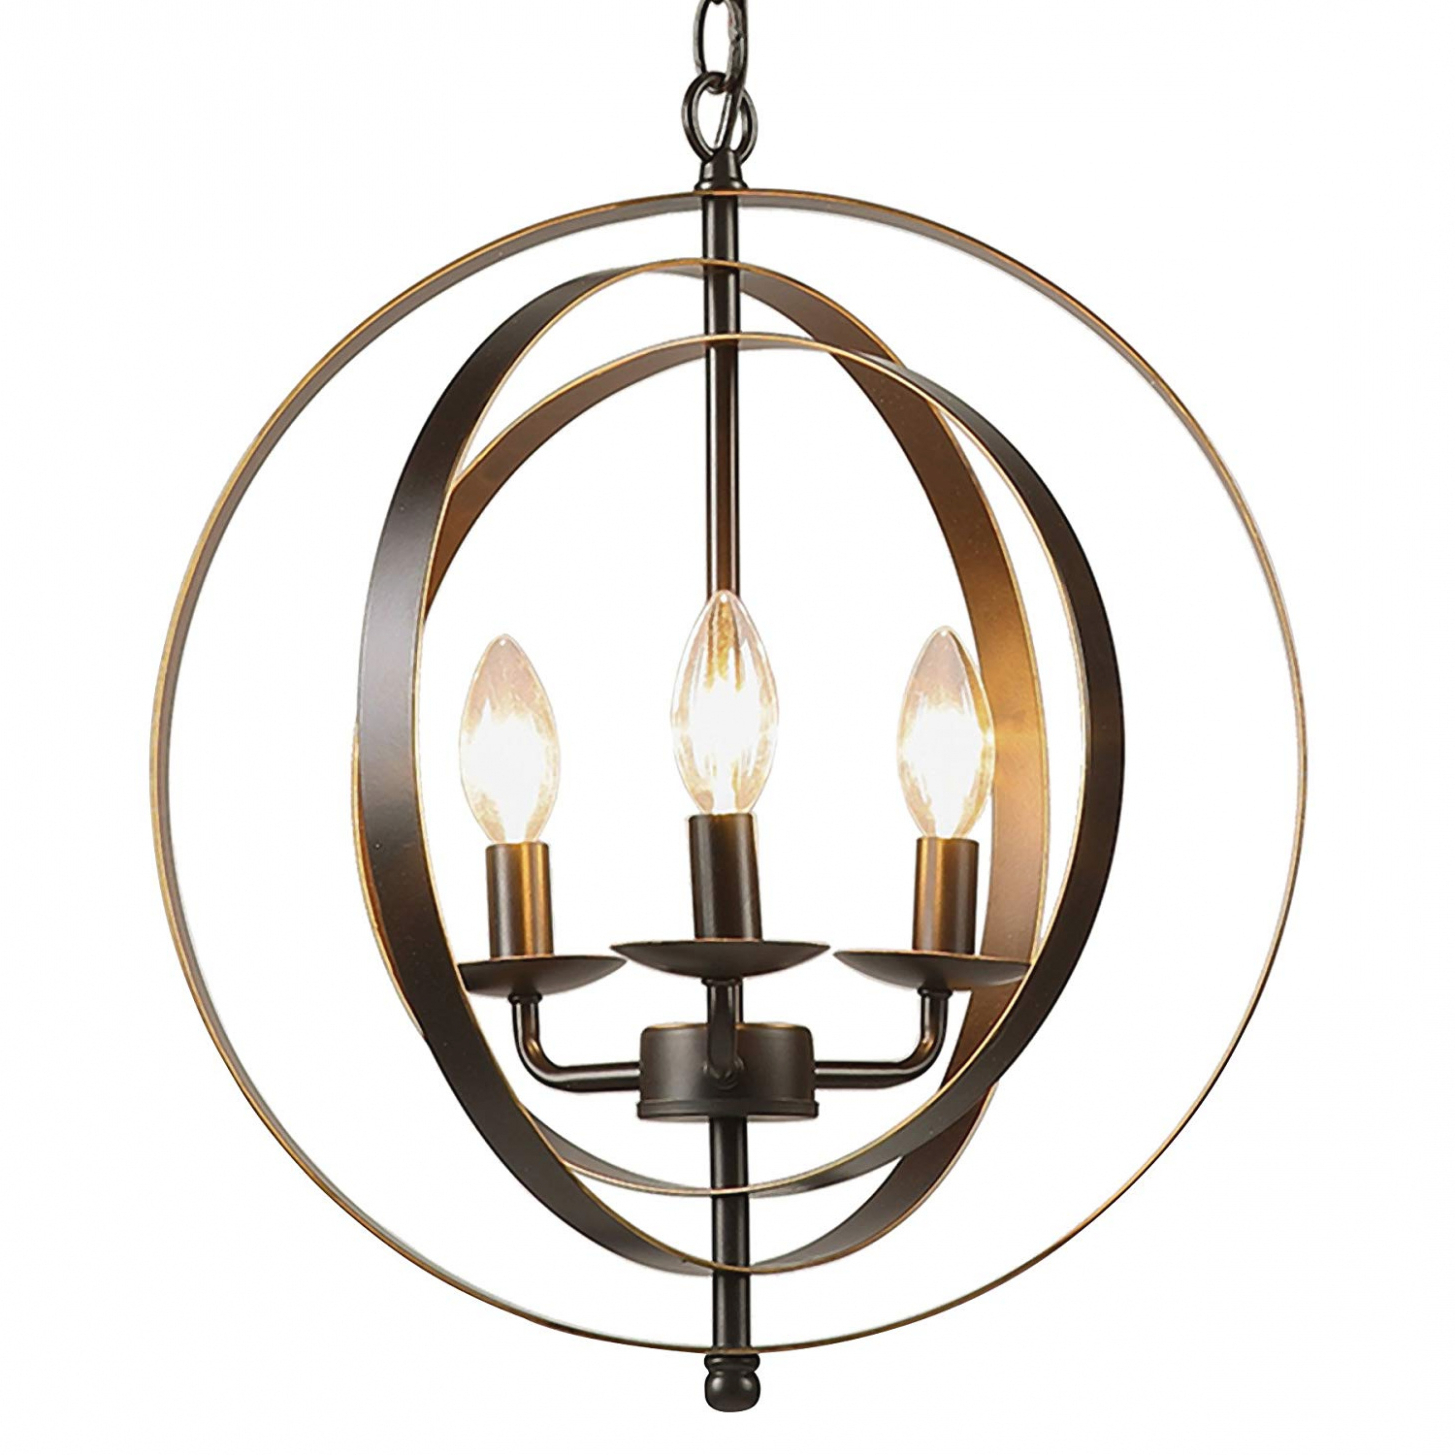 Shipststour 3 Light Globe Chandeliers Pertaining To Famous Lighting. Endearing Globe Chandelier Lighting Your Home (Gallery 17 of 20)